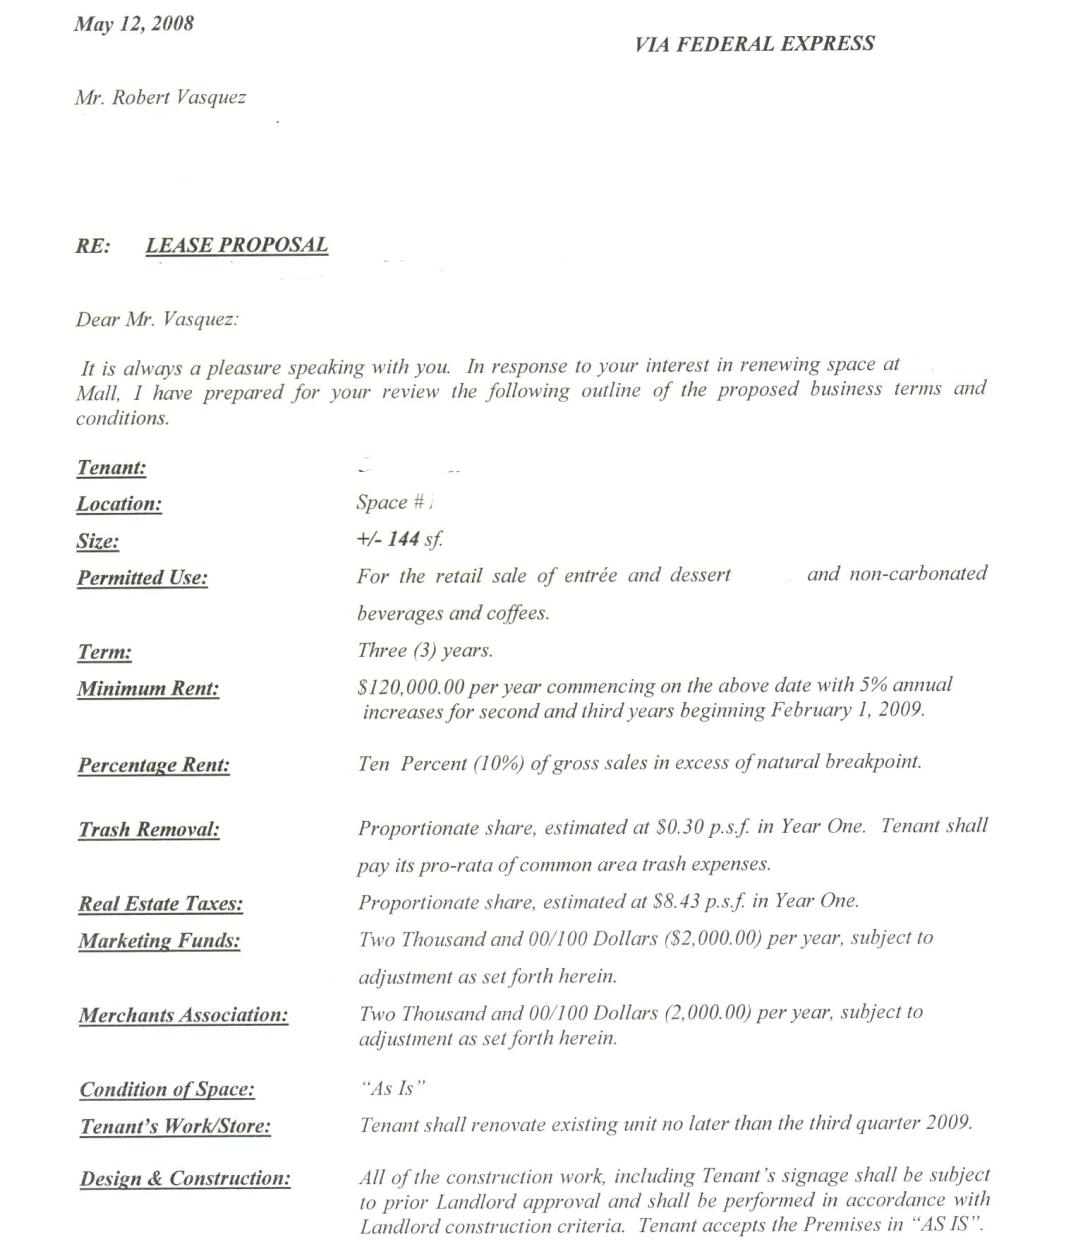 Intent to Lease Letter Template - Intent to Break Lease Letter Fice Space Template Property